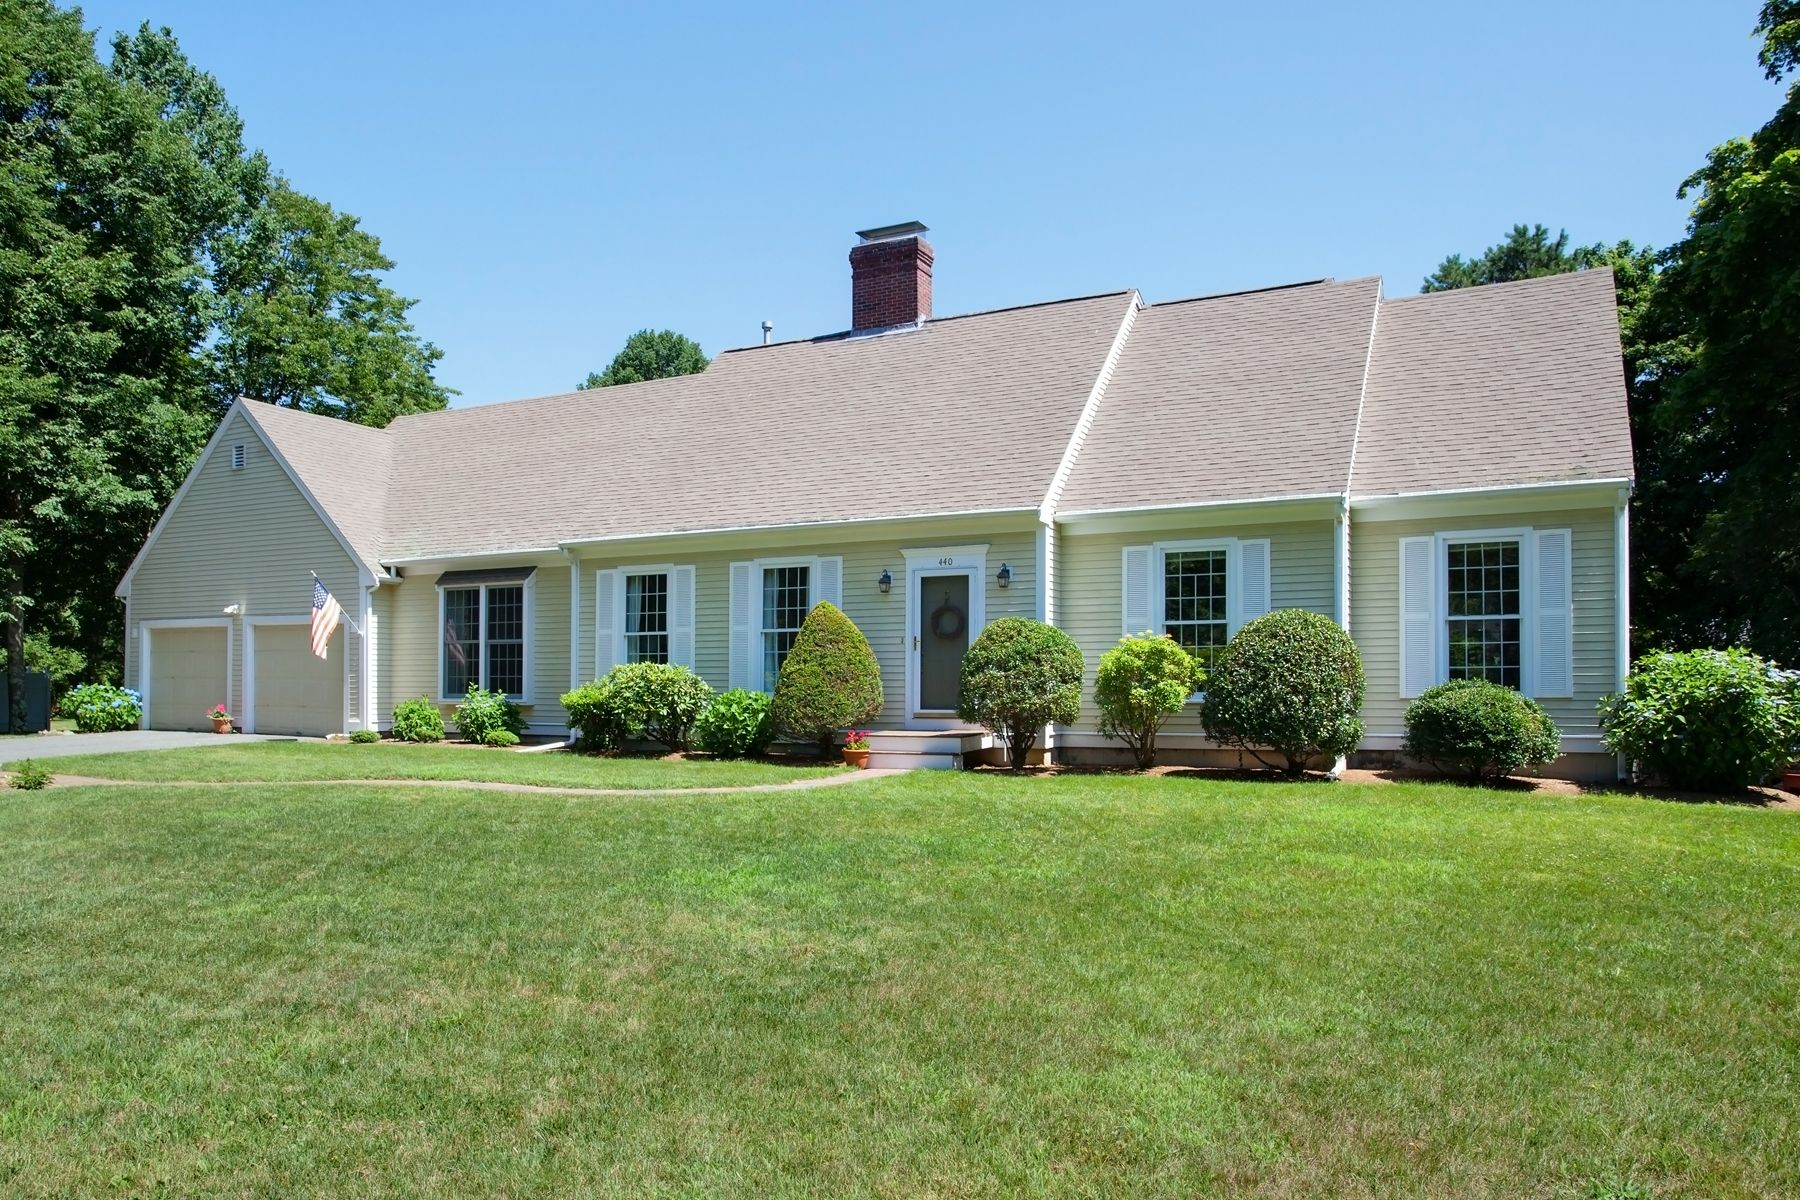 Single Family Home for Active at 440 Main Street, Cotuit 440 Main Street Cotuit, Massachusetts 02635 United States